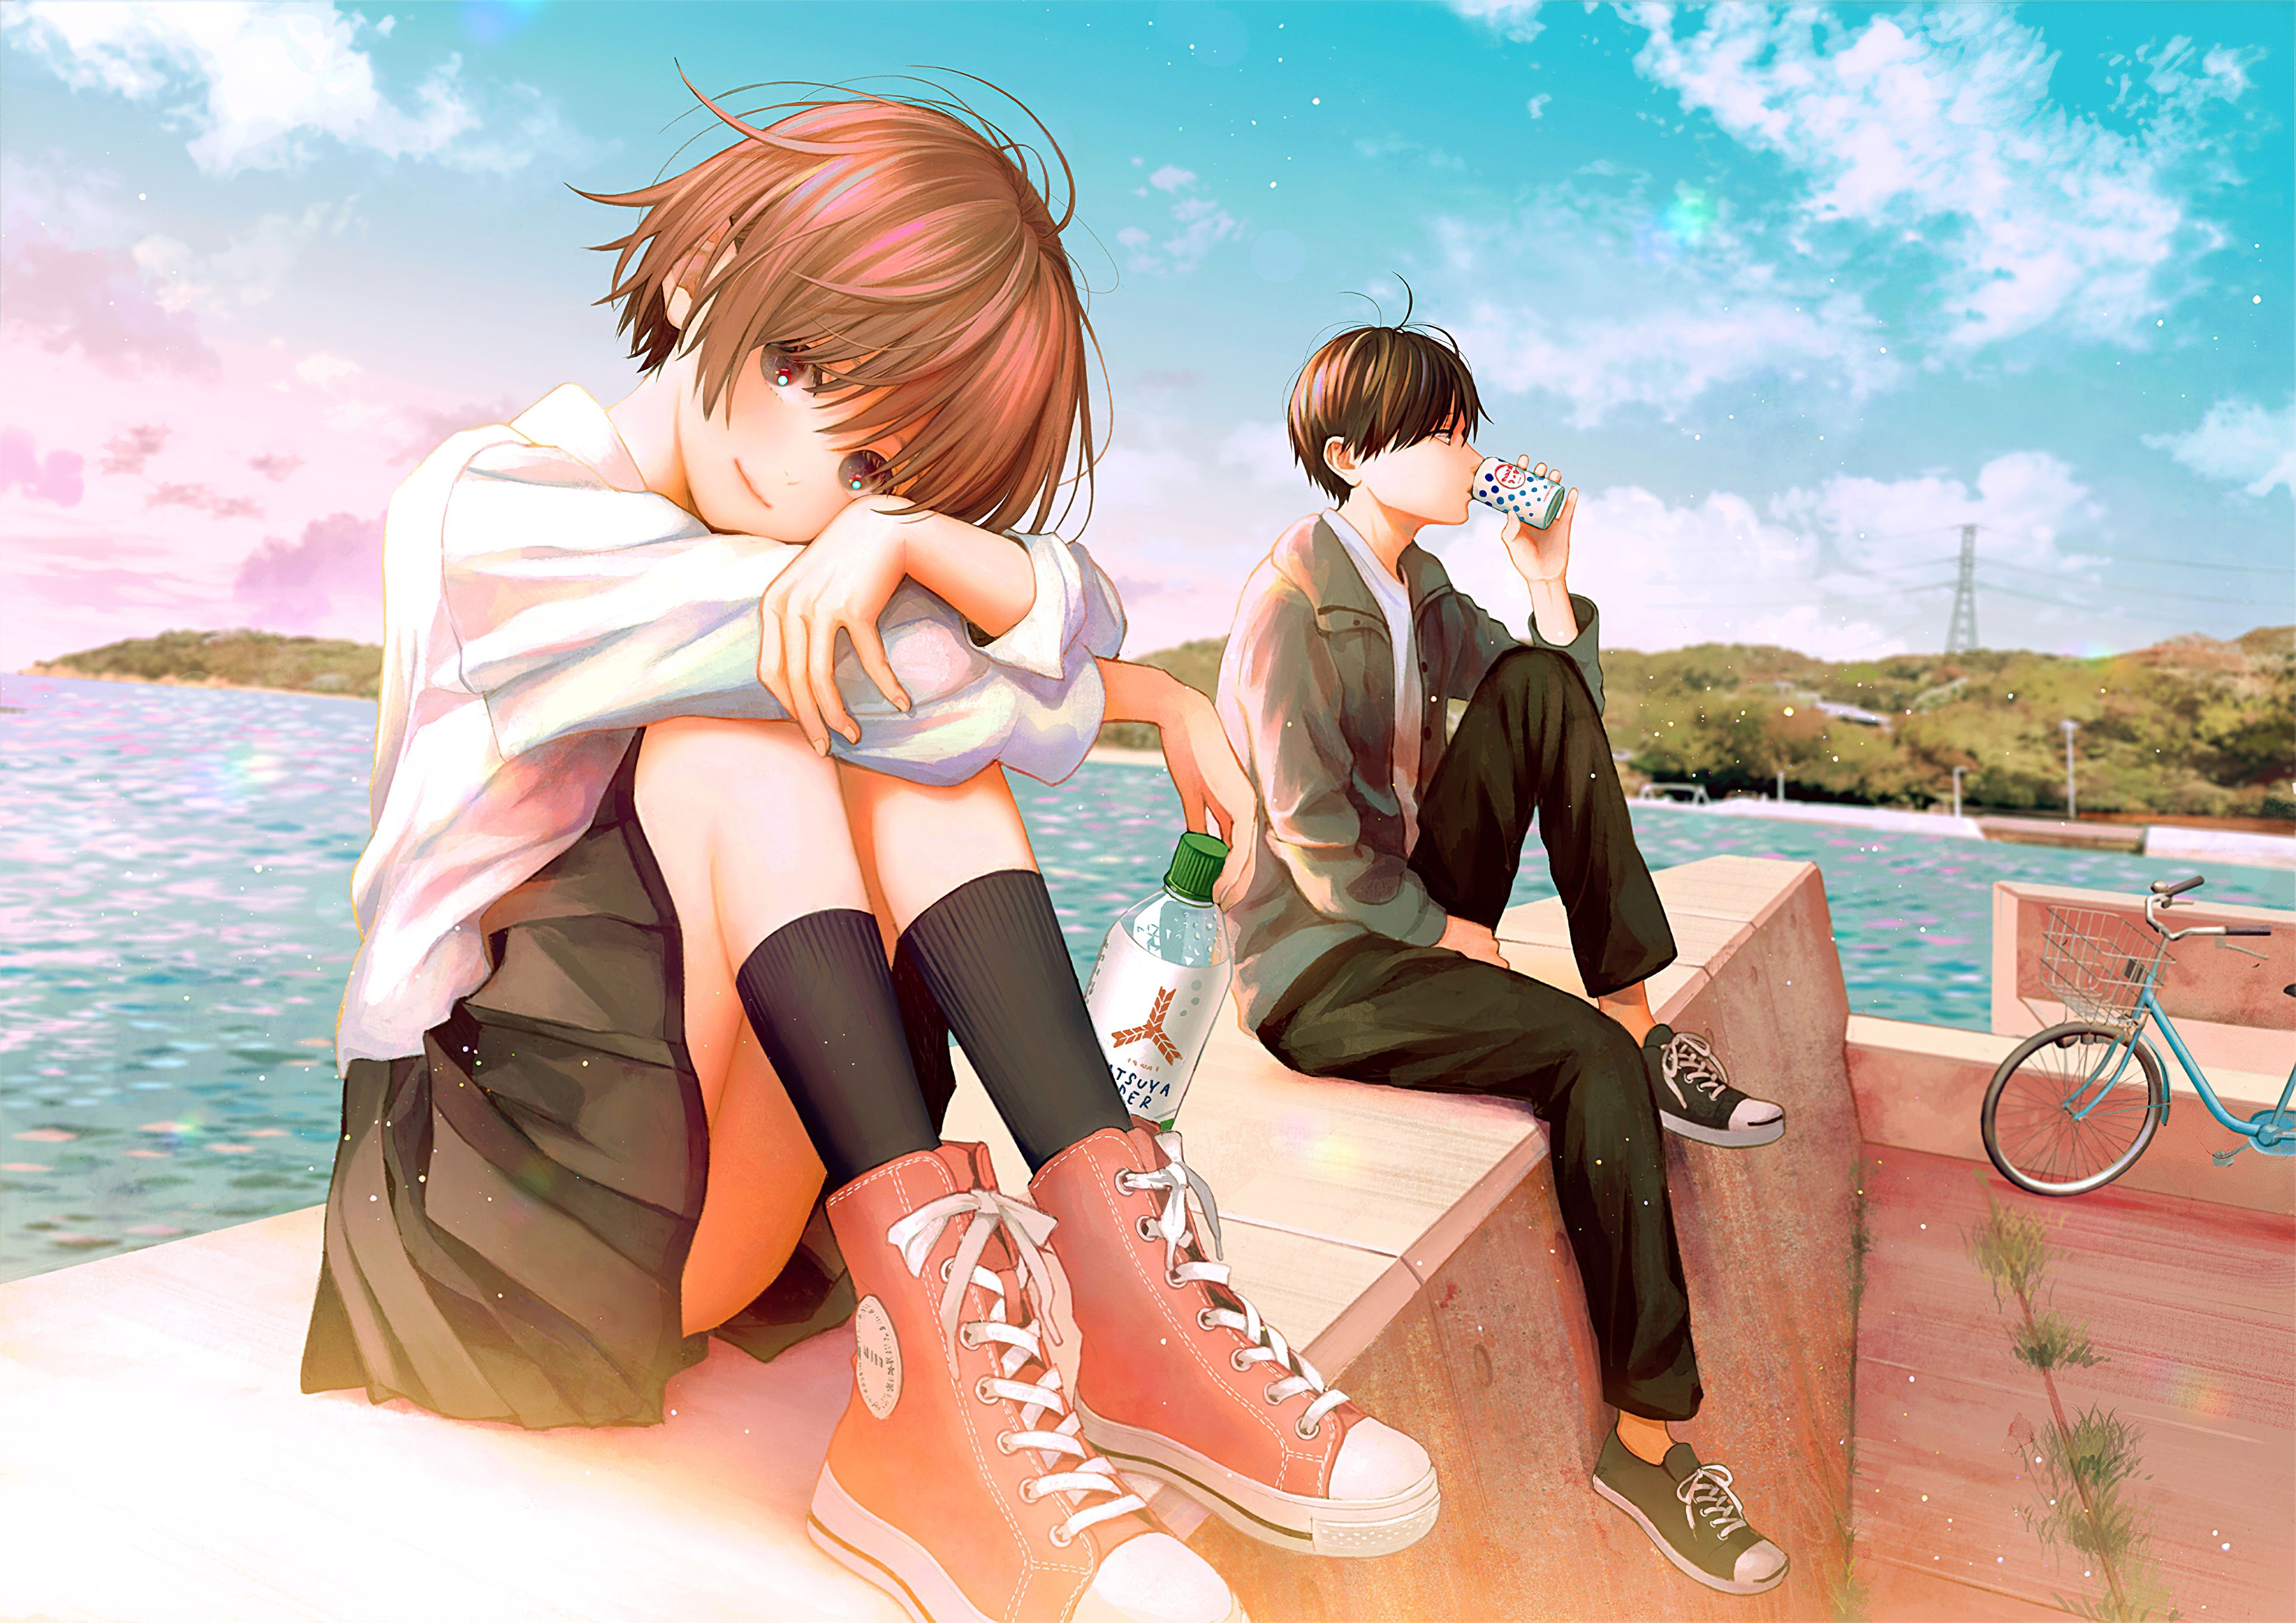 Anime Couple School Wallpapers - Wallpaper Cave